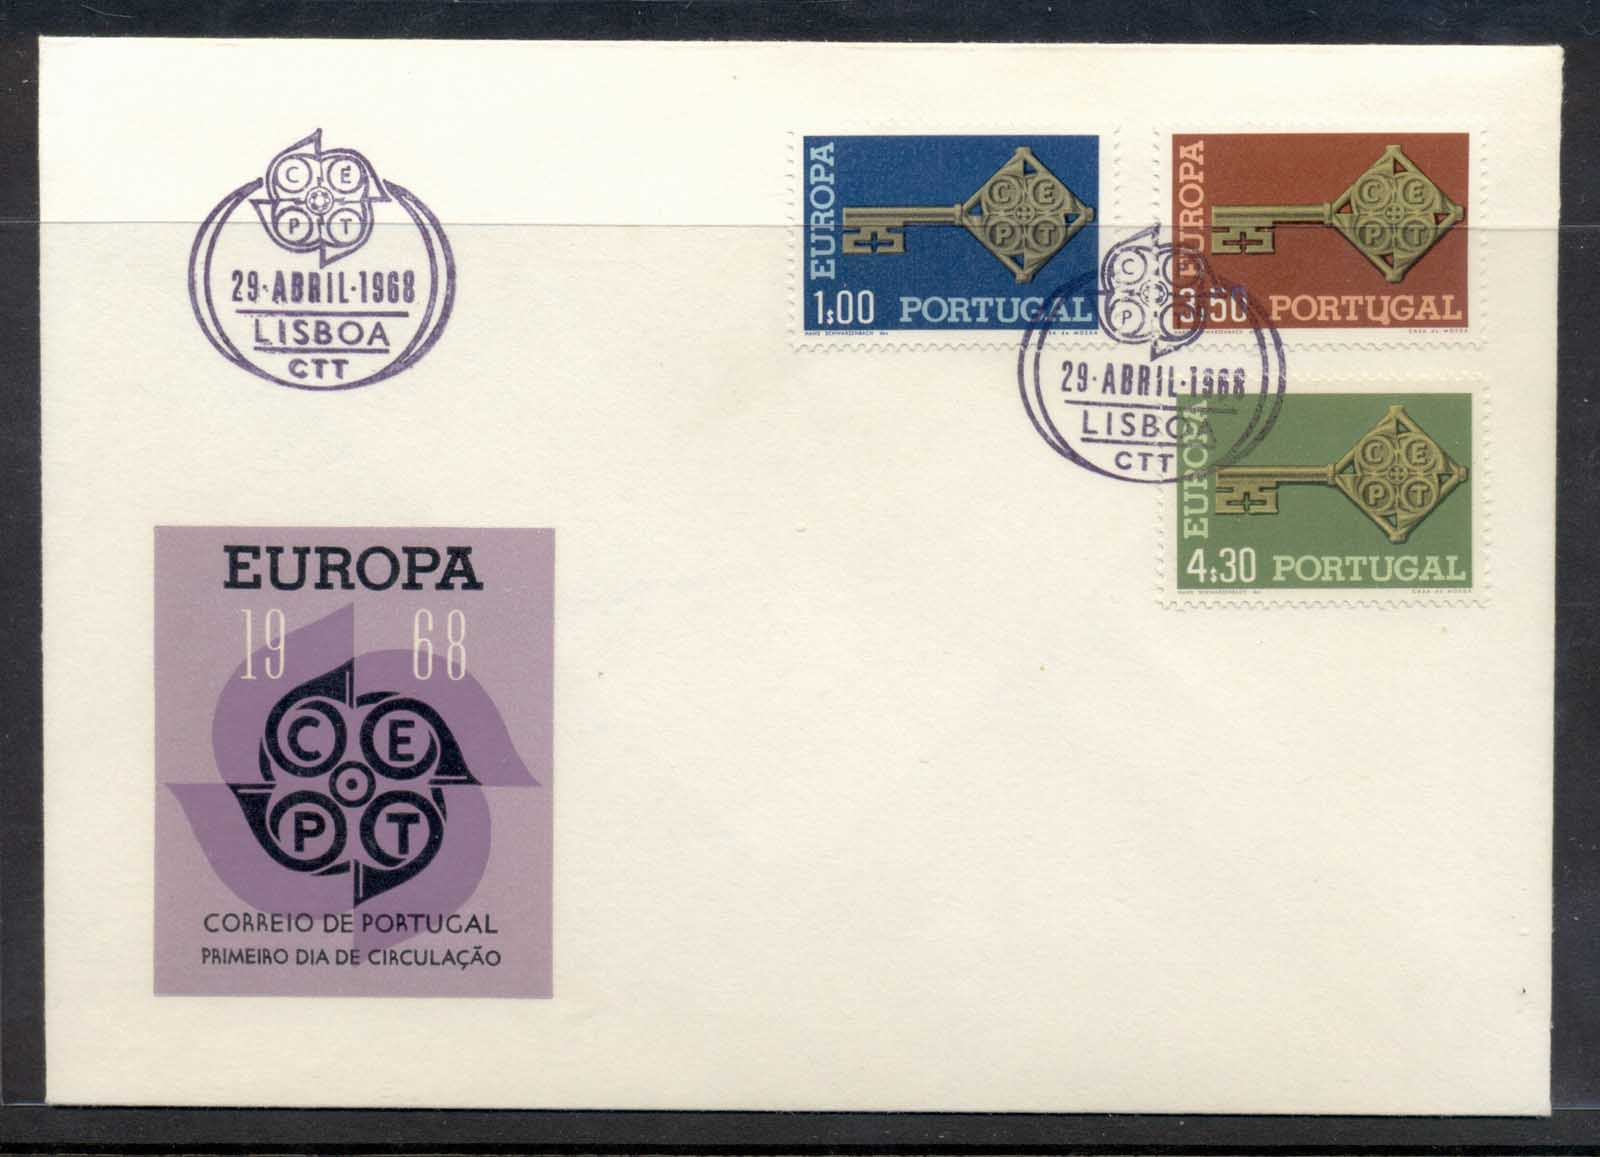 Portugal 1968 Europa Key with Emblem FDC